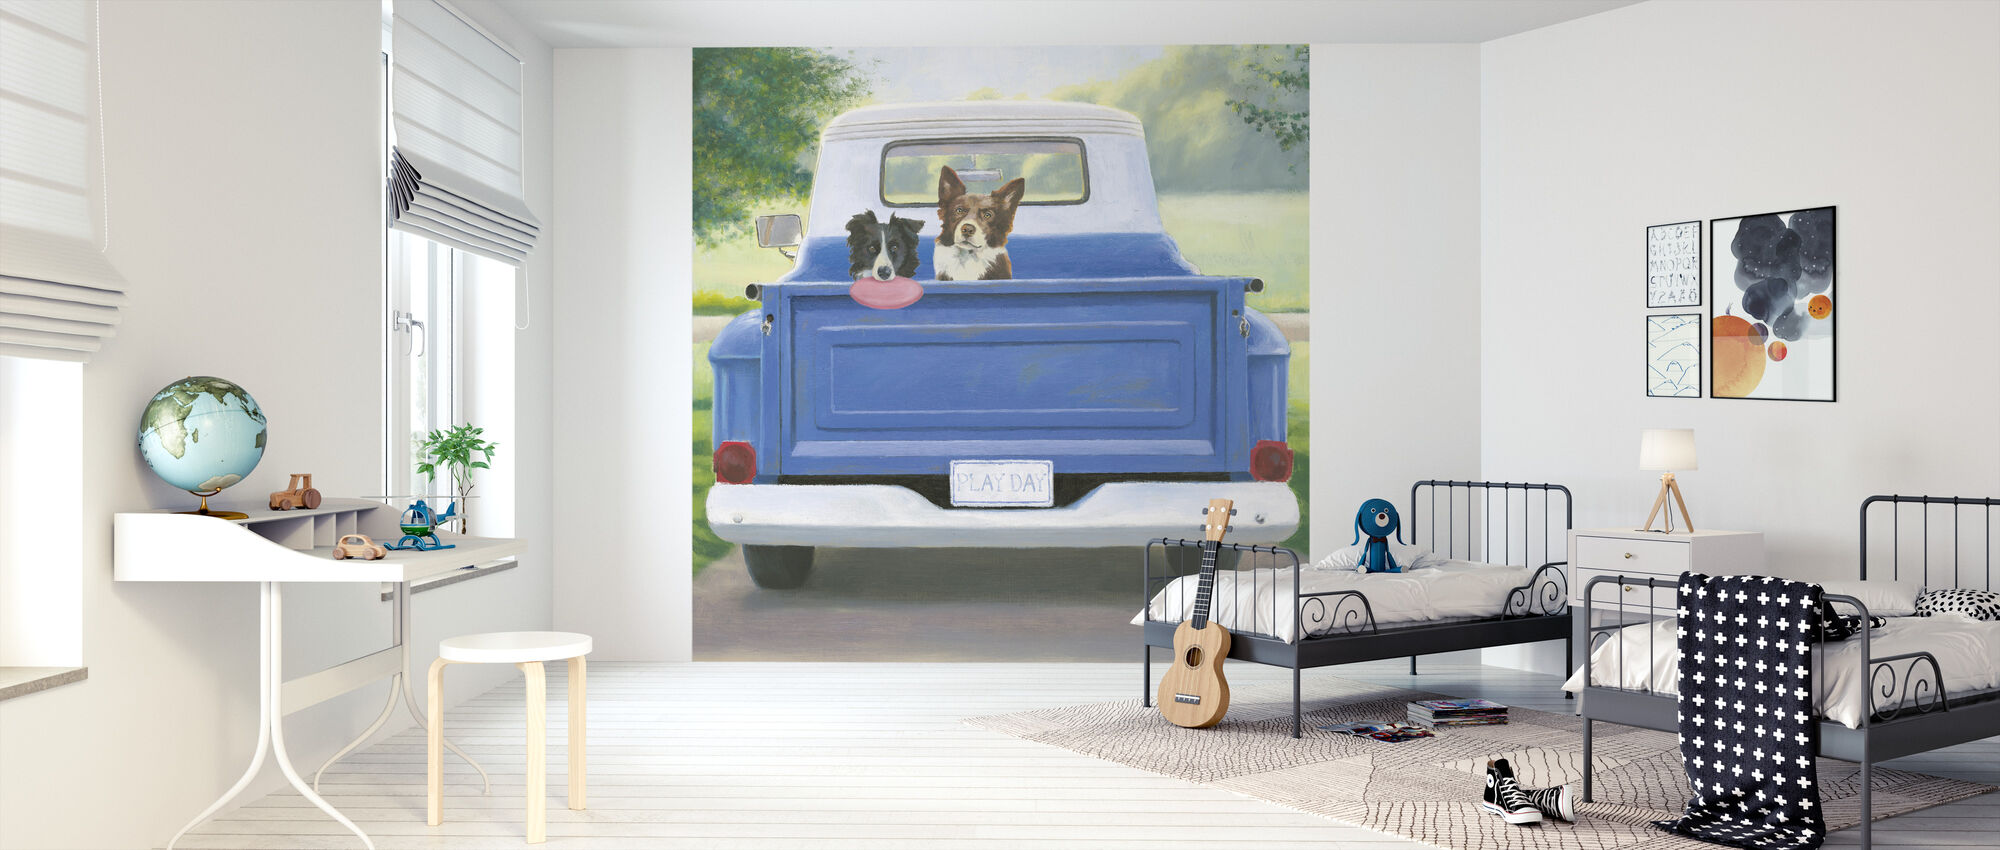 Play Day - Wallpaper - Kids Room